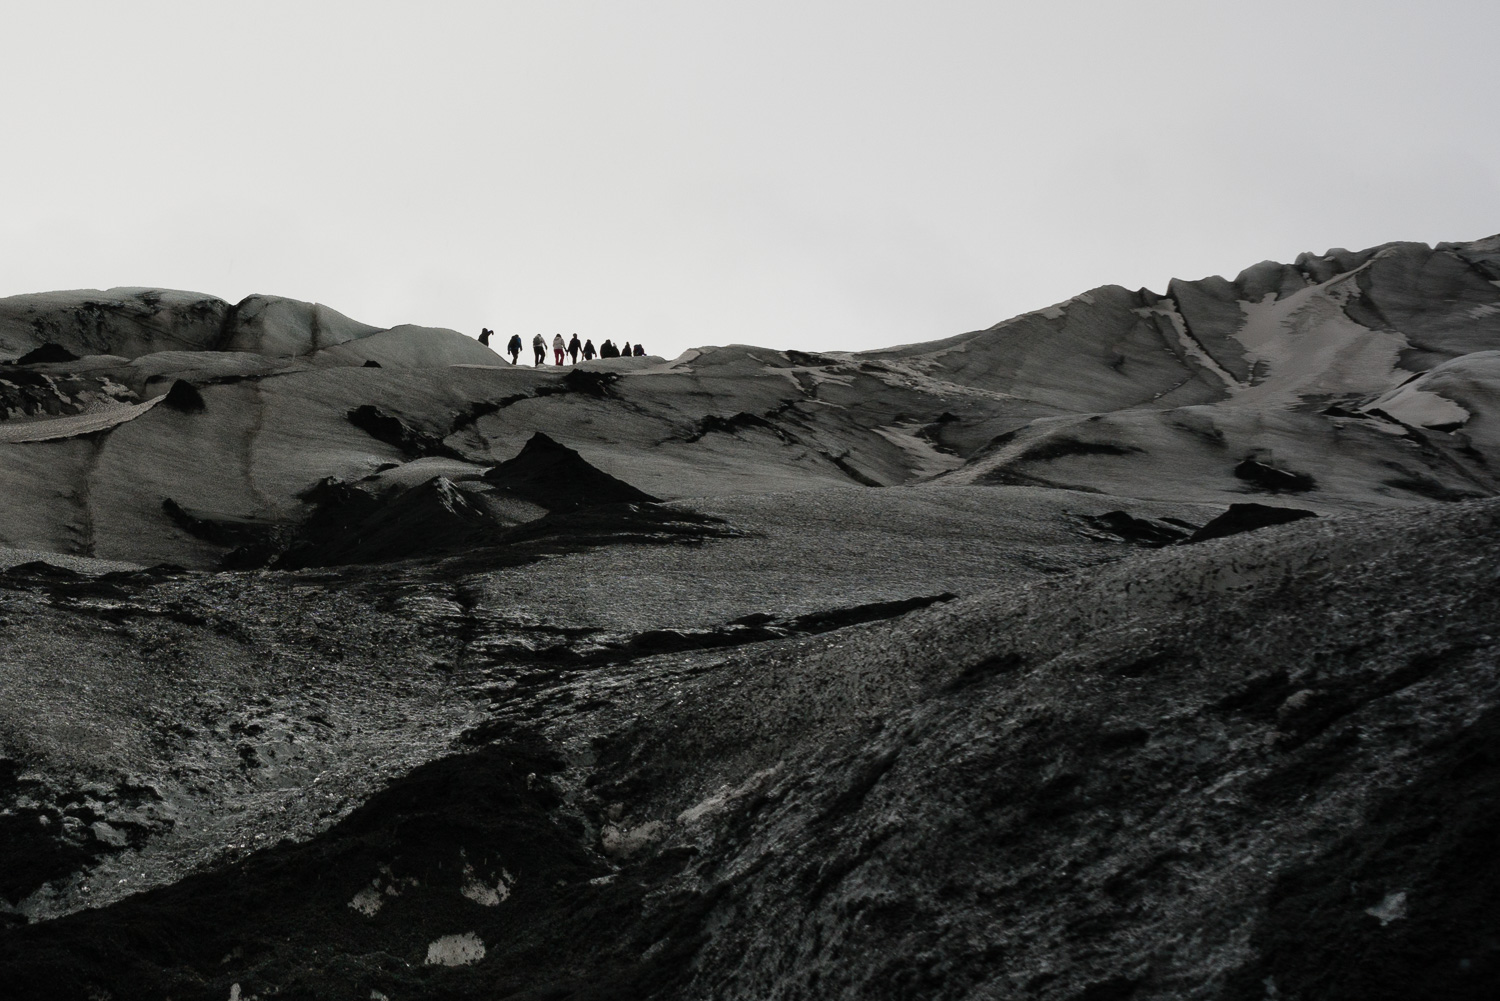 This isn't a monochrome photo rather a volcanic landscape completely void of color.